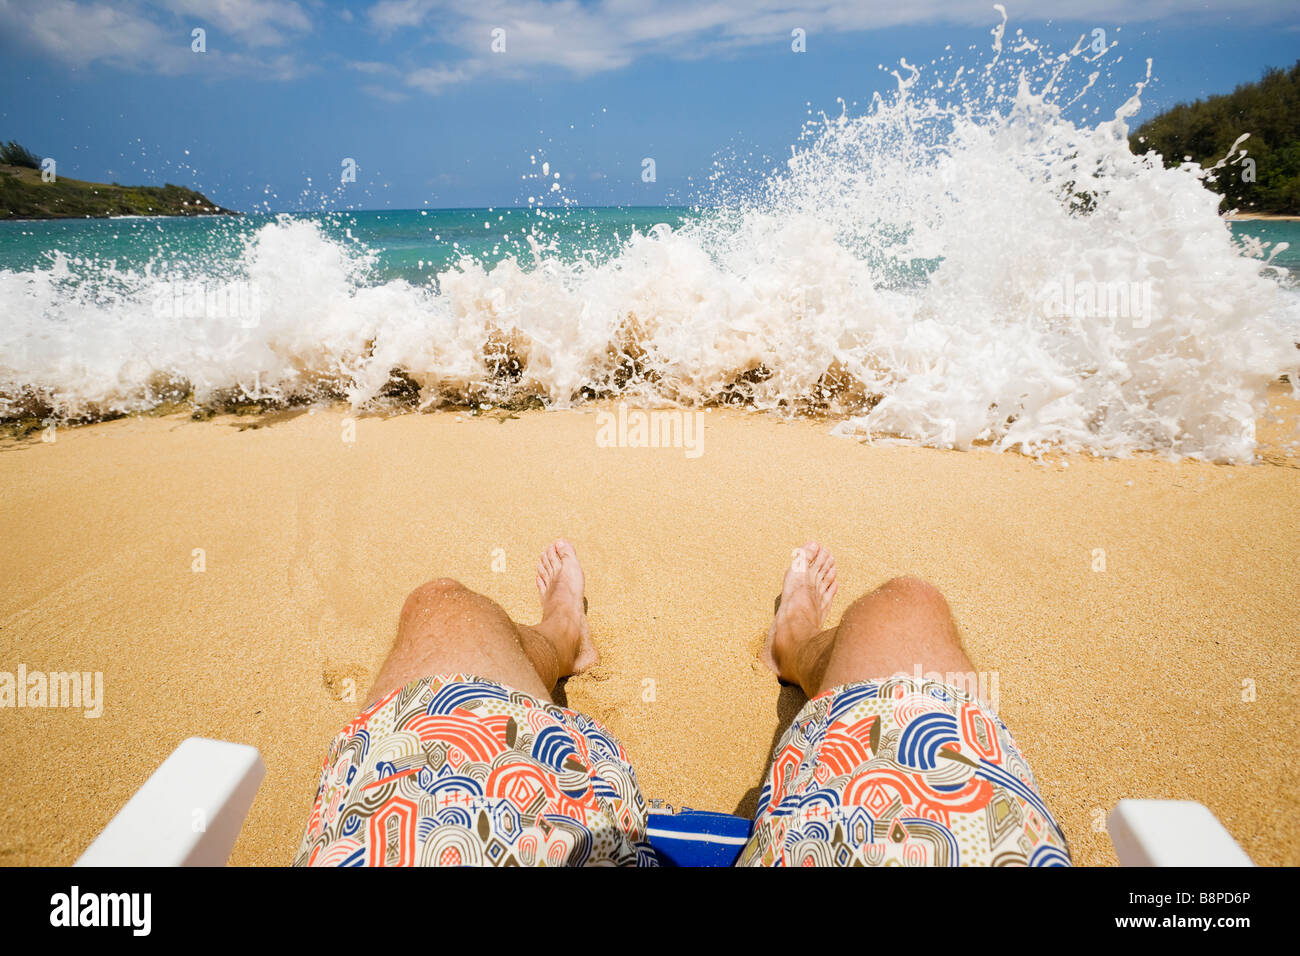 A First Person View Of Sitting In A Chair On The Beach